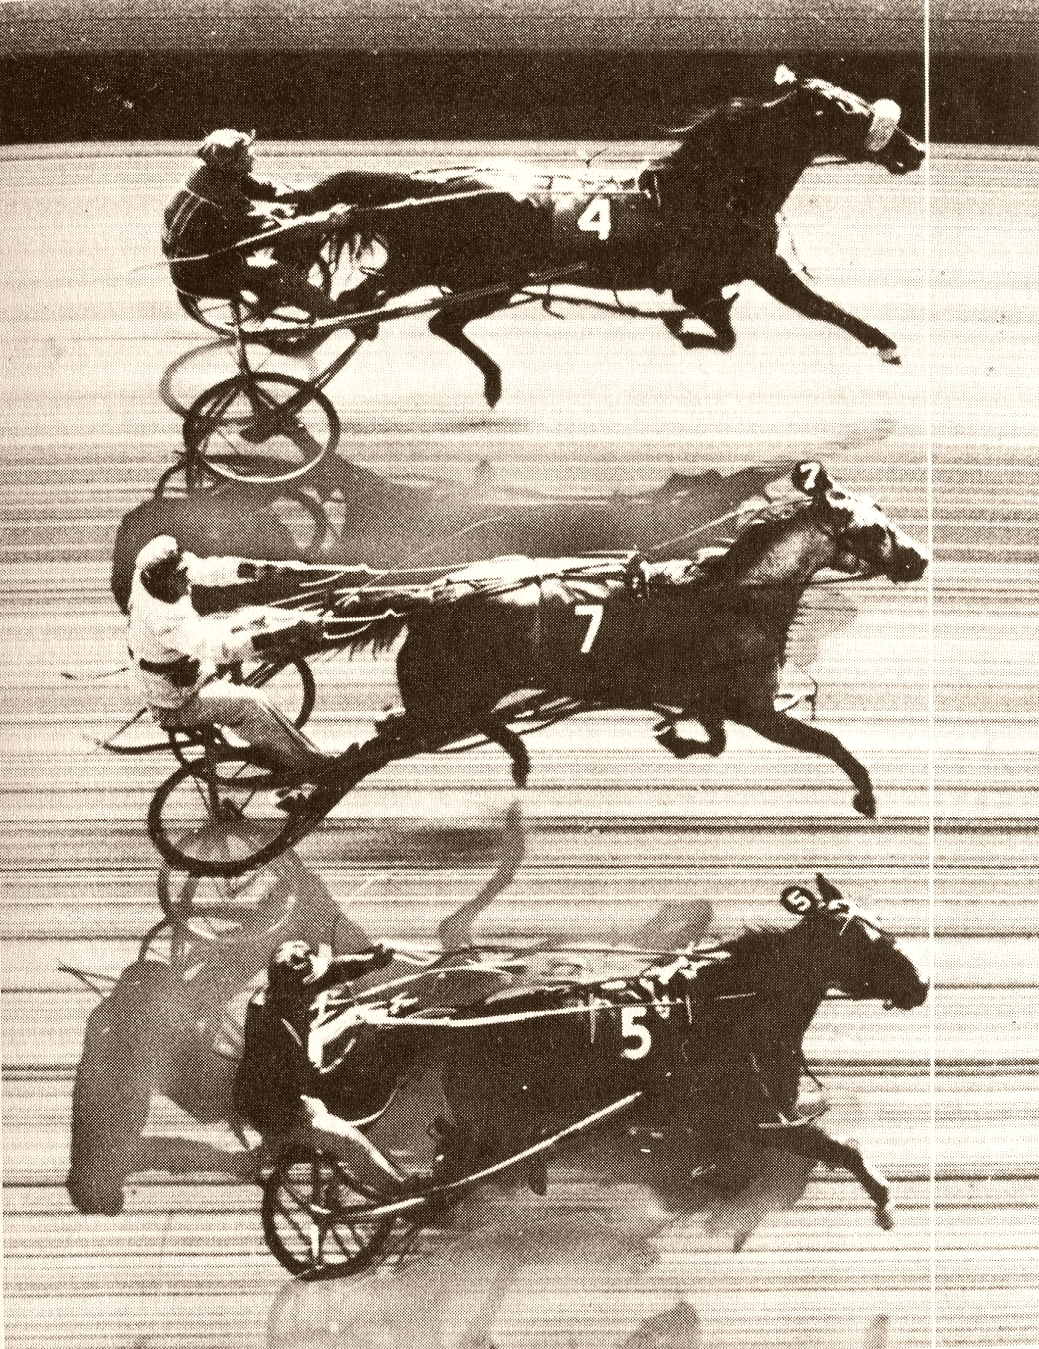 The first triple dead heat in harness racing: Patchover (Ed Myer), Payne Hall (F. Albertson) and Penny Maid (E. Beede) in a Freehold Raceway (USA) race. By Unknown - Gooreen collection,  Public Domain